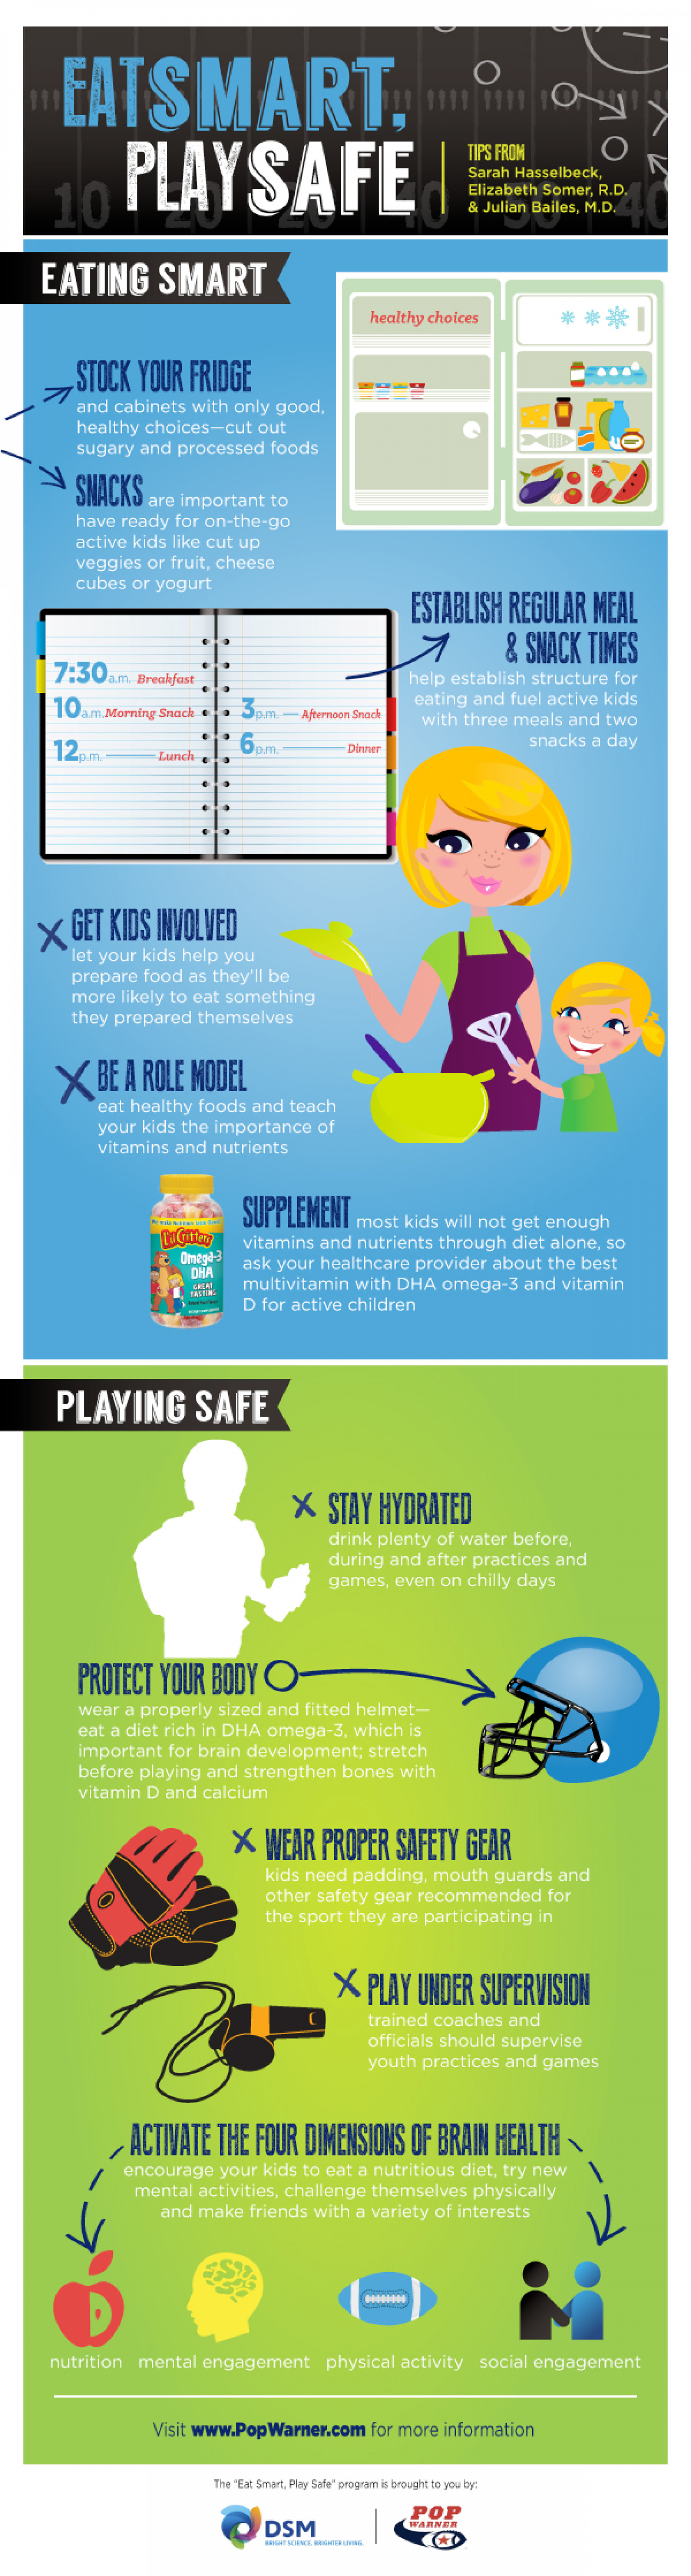 Eat Smart, Play Safe Infographic